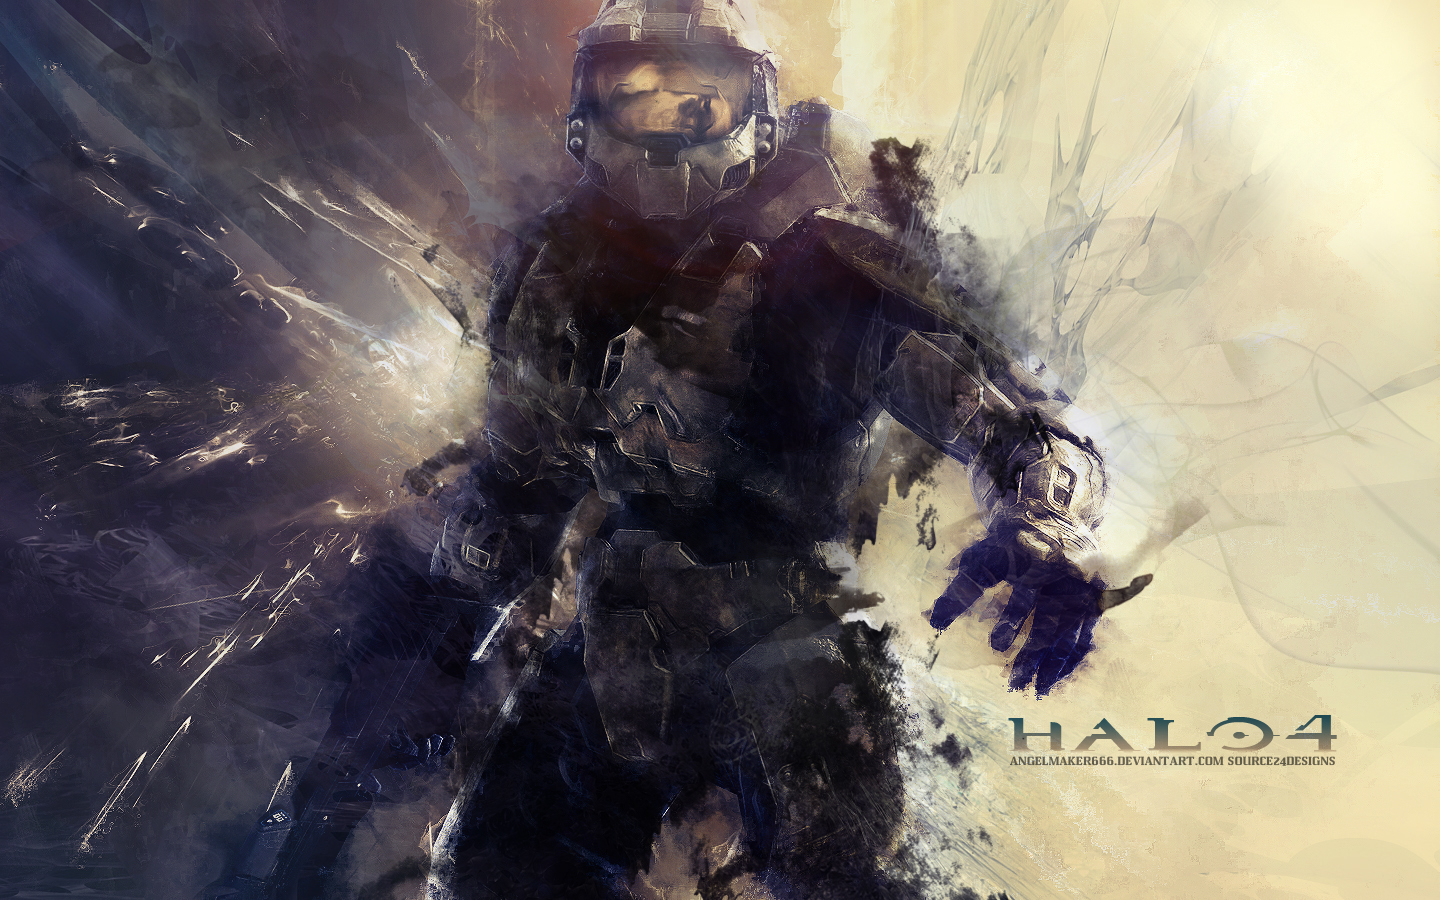 Halo 4 requires 8Gb of storage for multiplayer VG247 1440x900